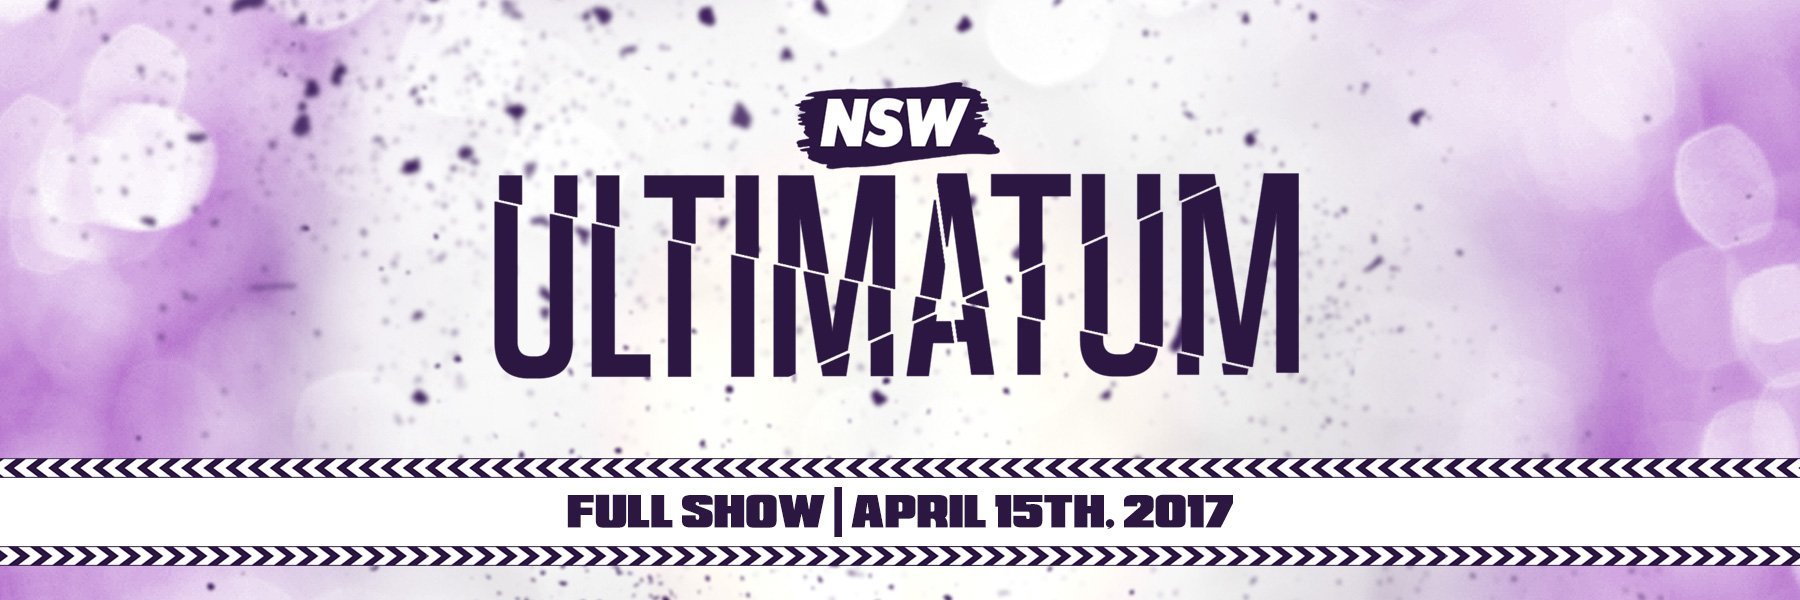 NSW Ultimatum 2017: Full Show